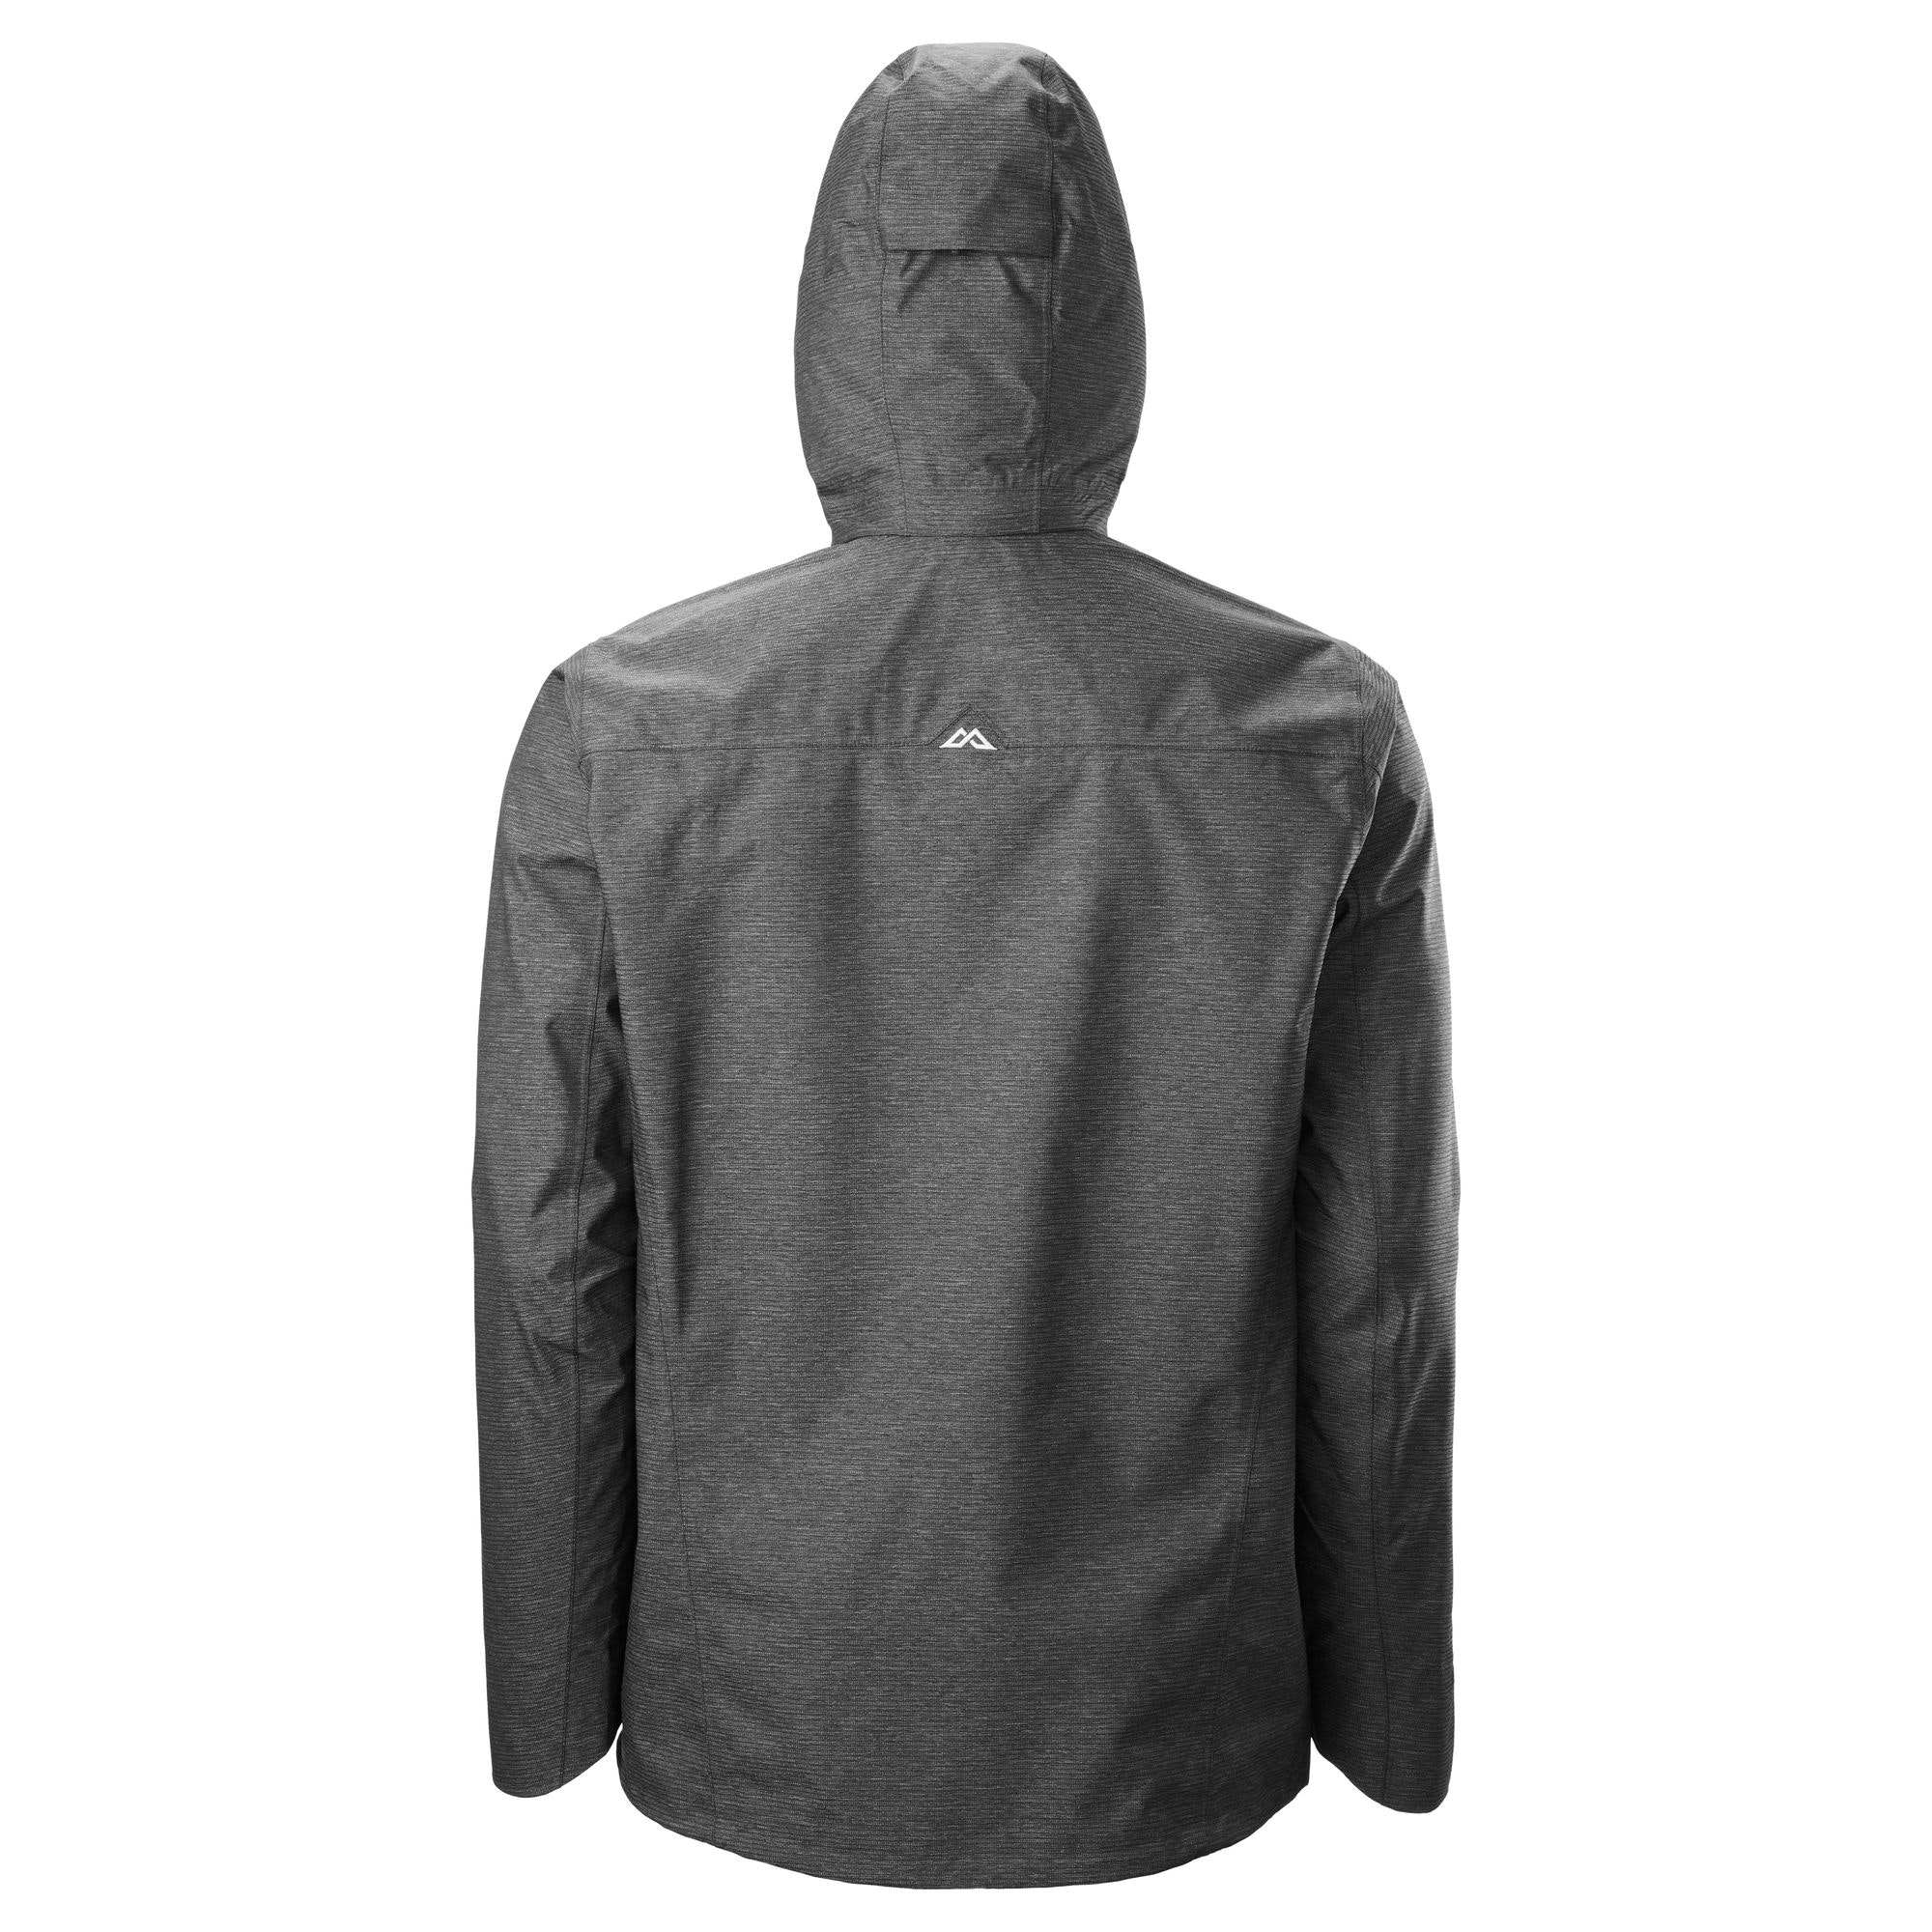 NEW-Kathmandu-Lawrence-Men-039-s-ngx-Windproof-Waterproof-Outdoor-Rain-Jacket-v2 thumbnail 7